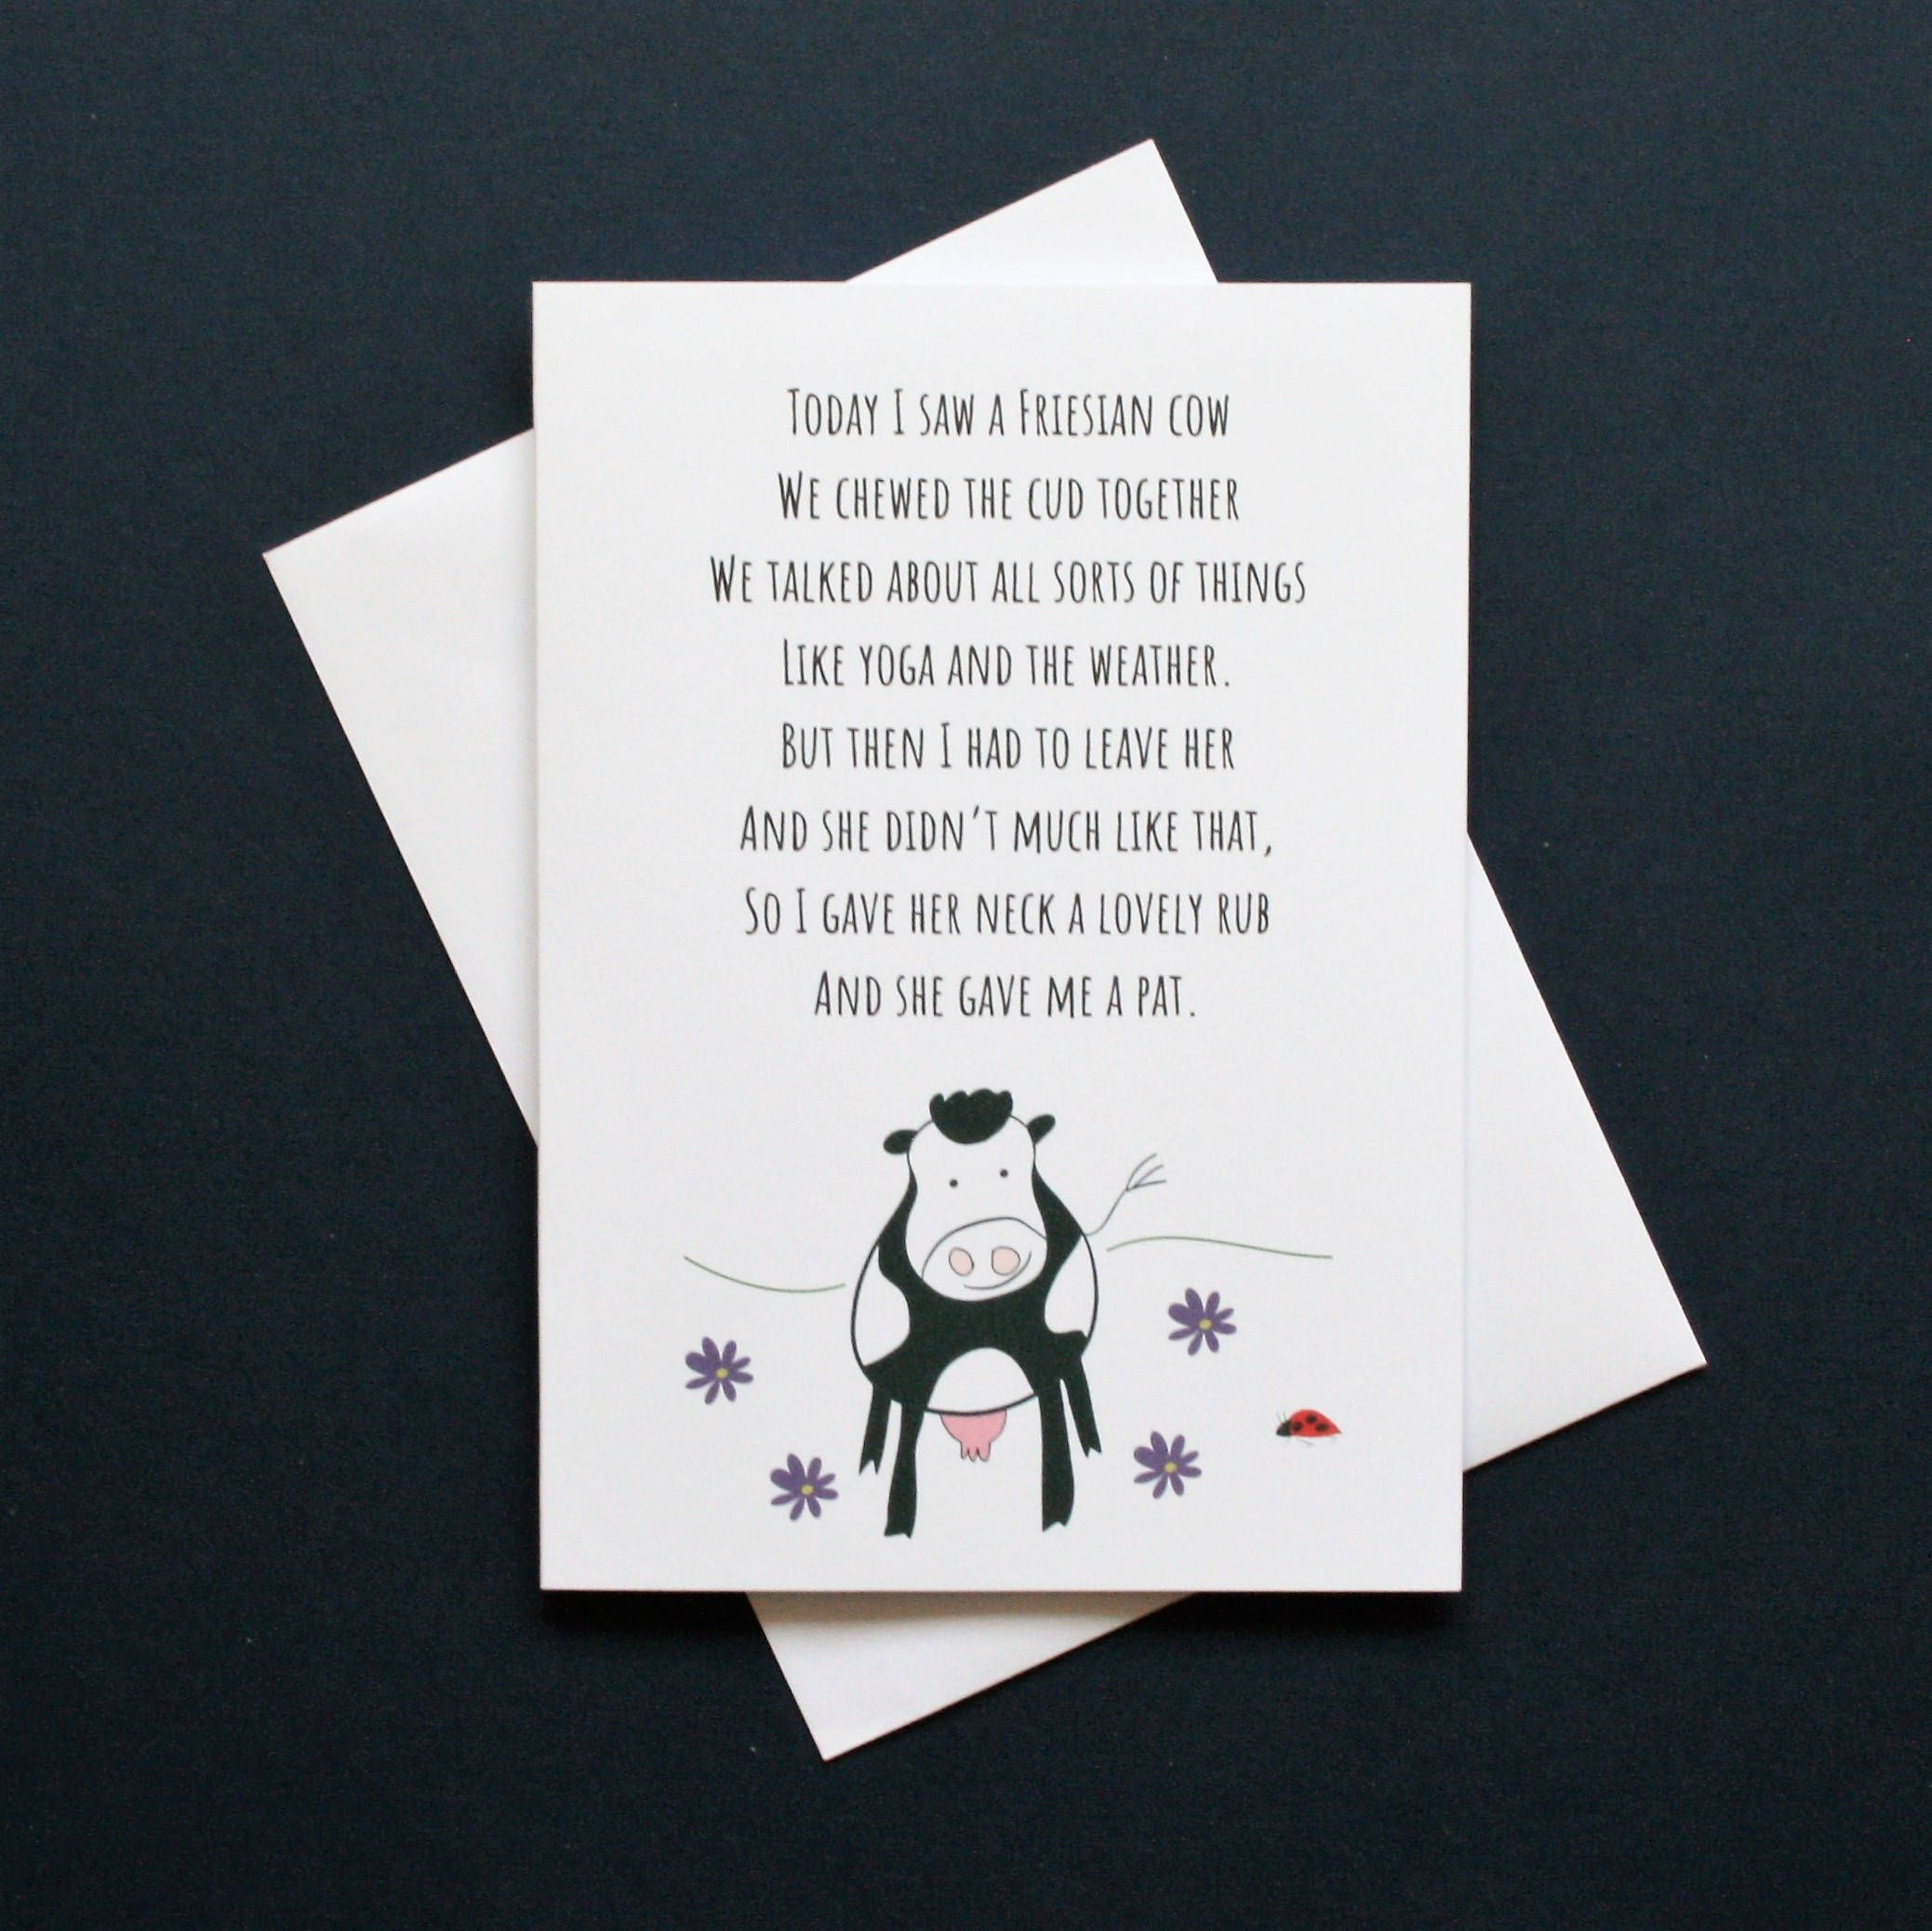 Uncategorized Cow Poems funny cow poem leaving chewing the cud friesian card pat on back silly po